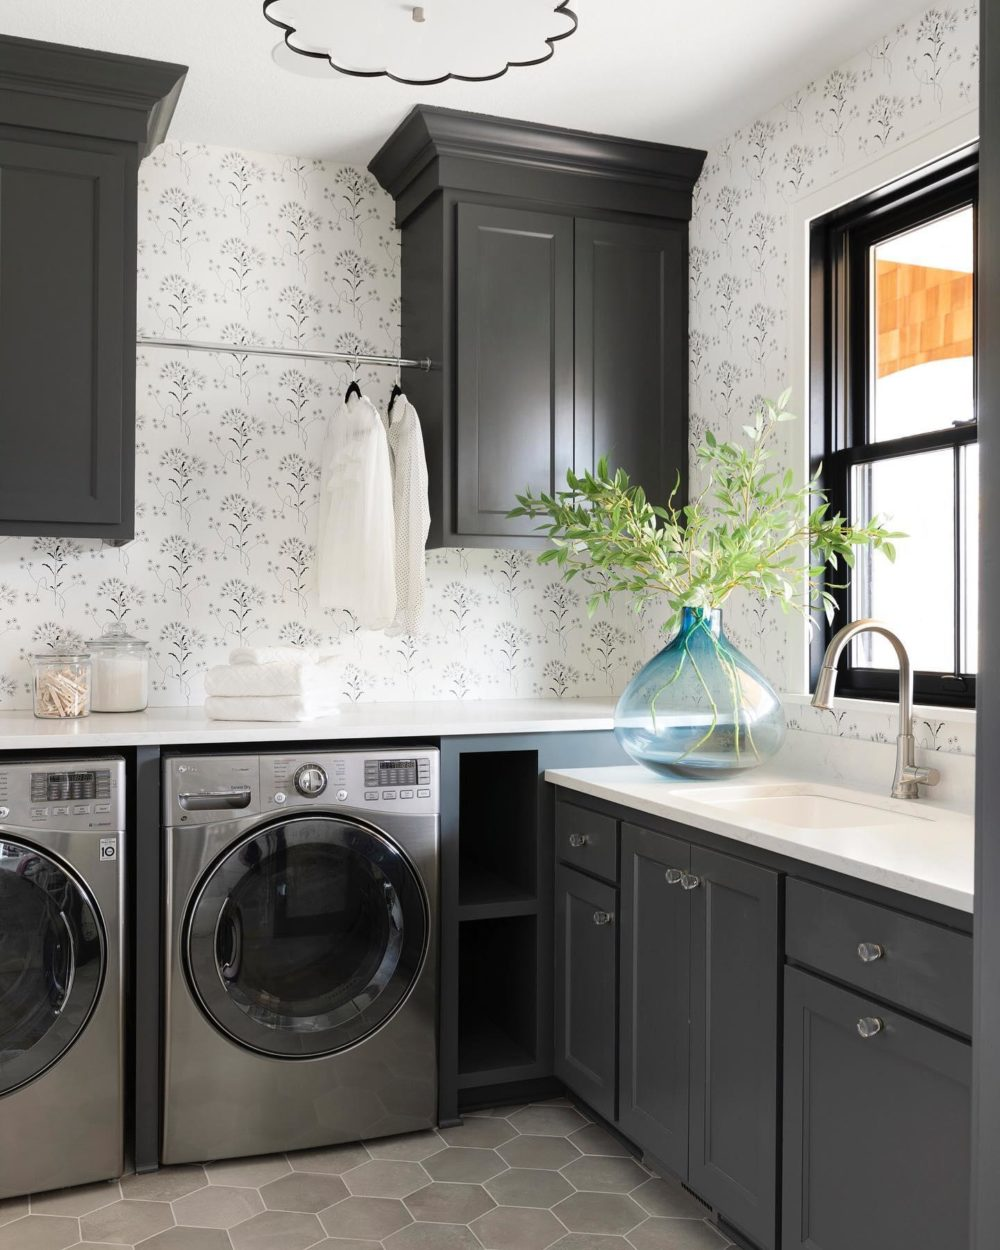 Floral wallpaper and tile floor laundry room